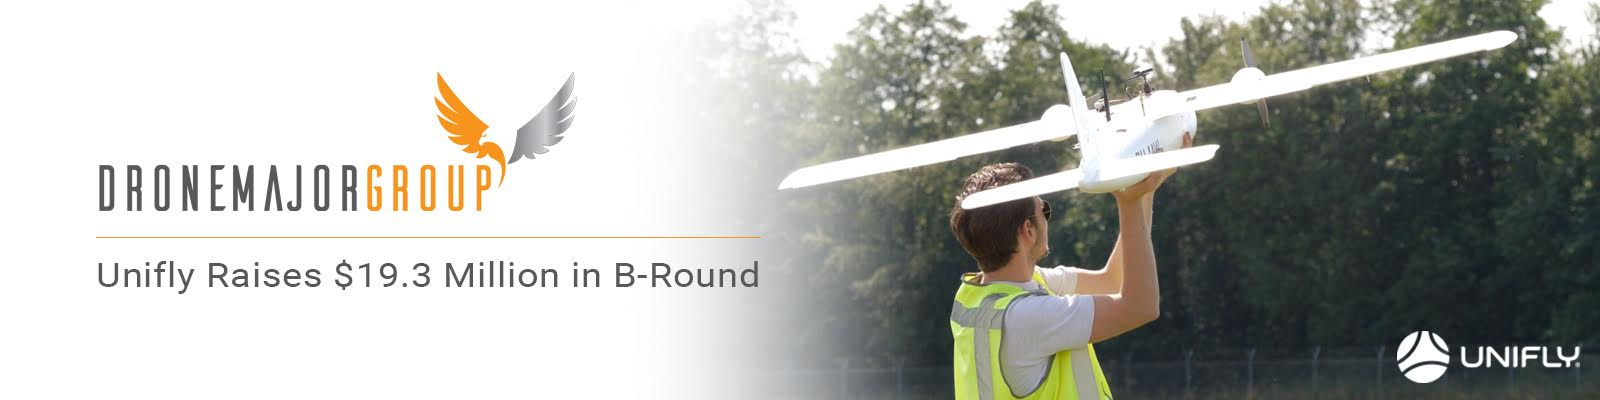 unifly b-round funding success over millions of dollars won